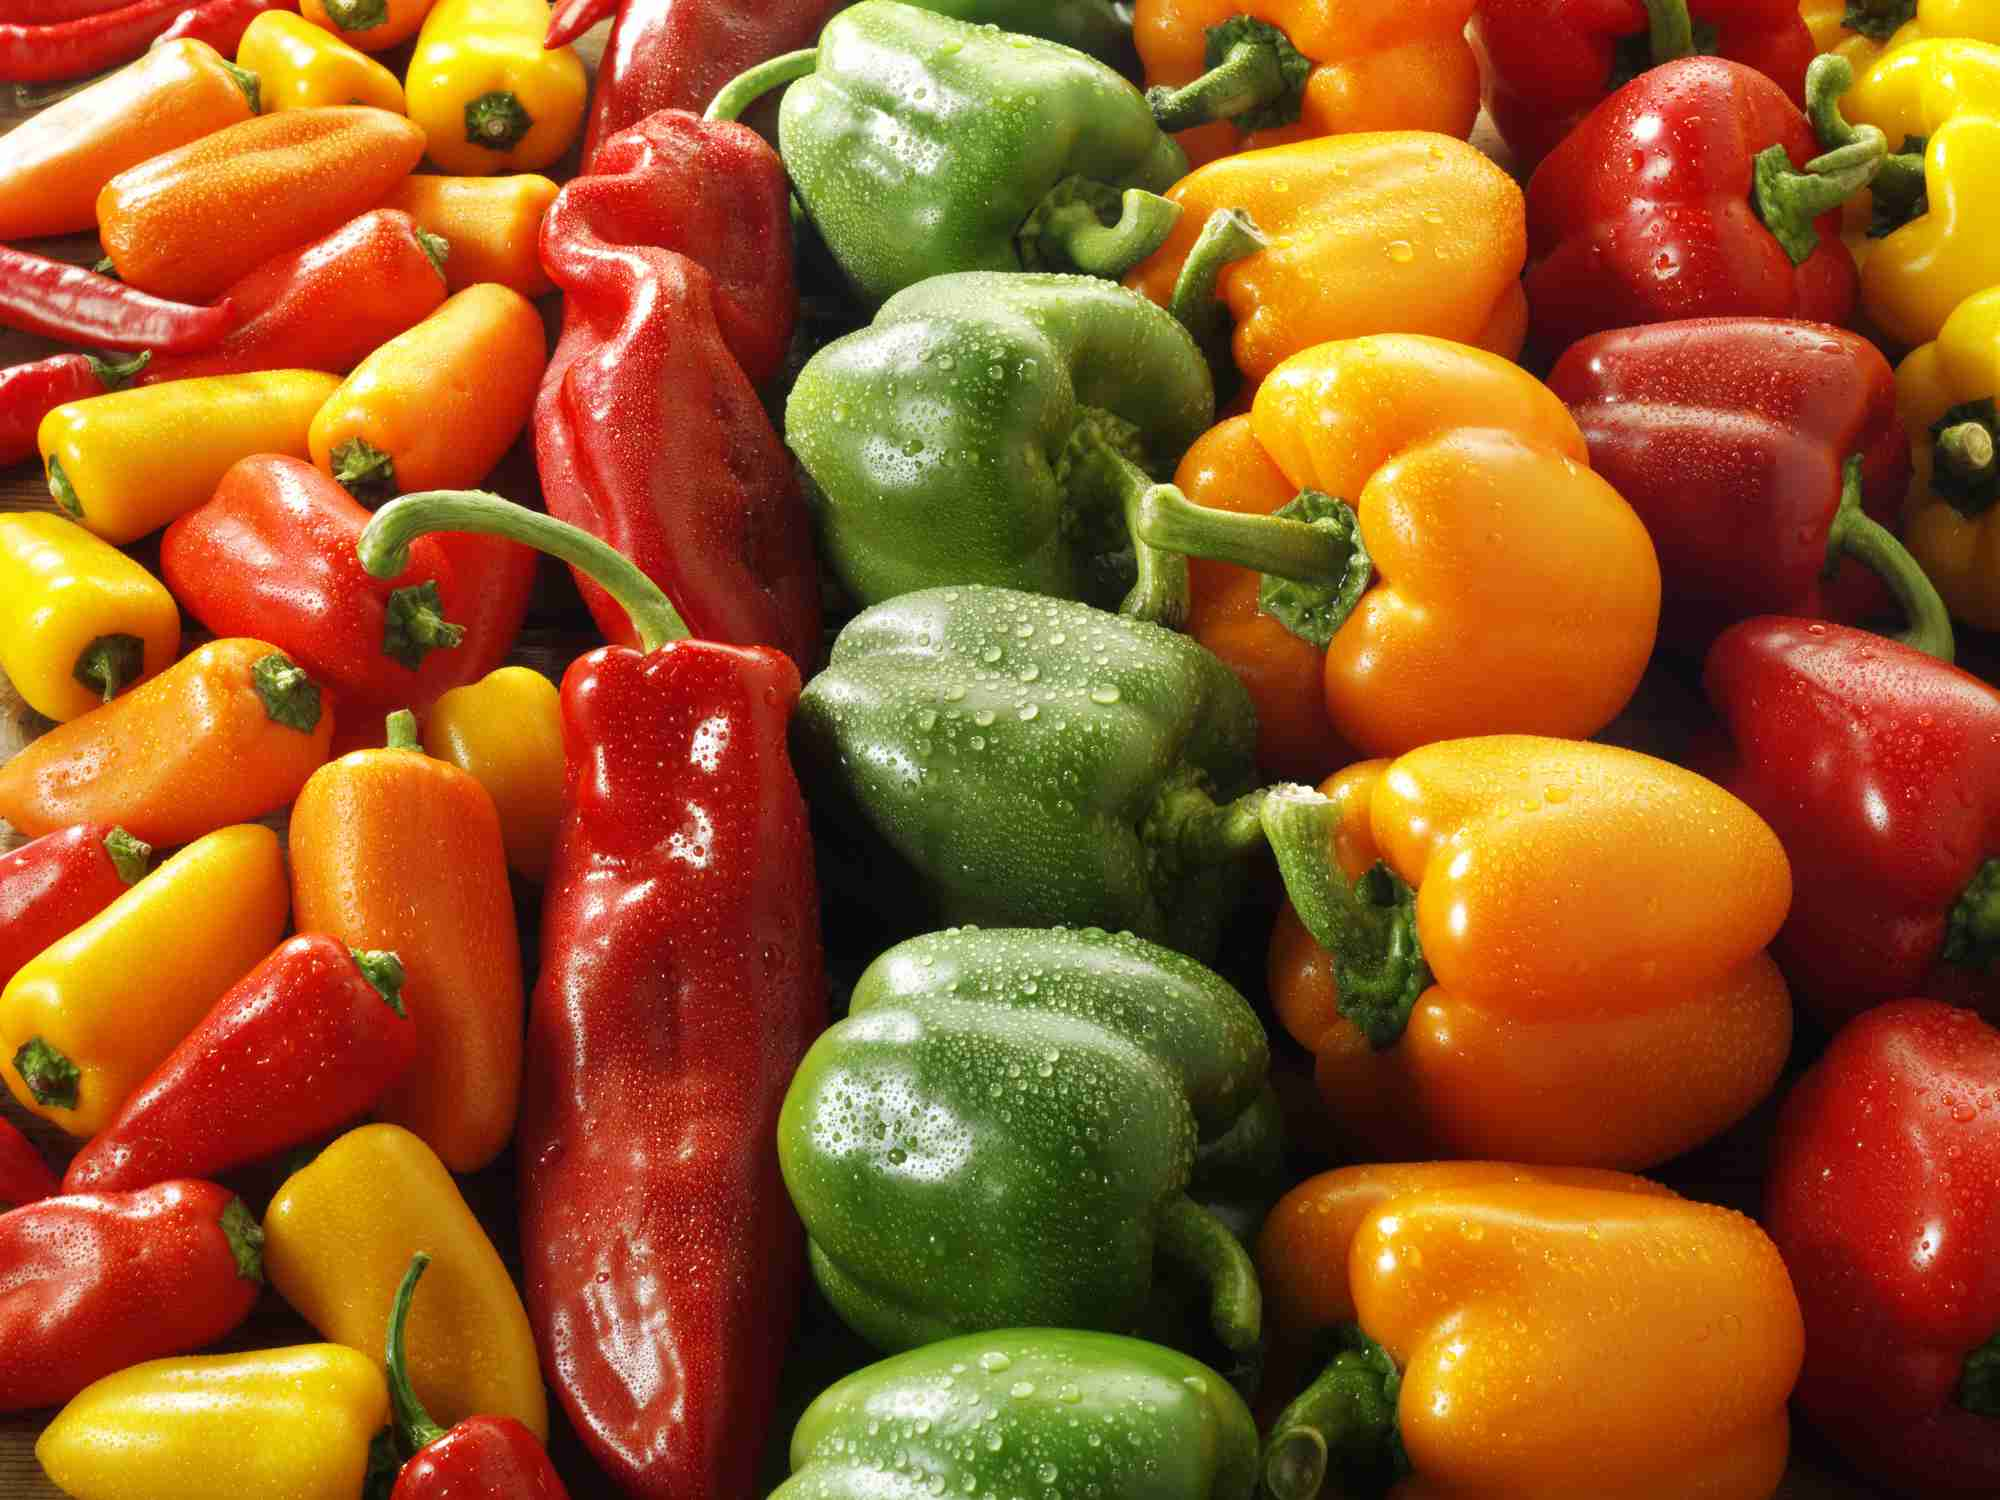 Mix of Sweet Peppers at the Market